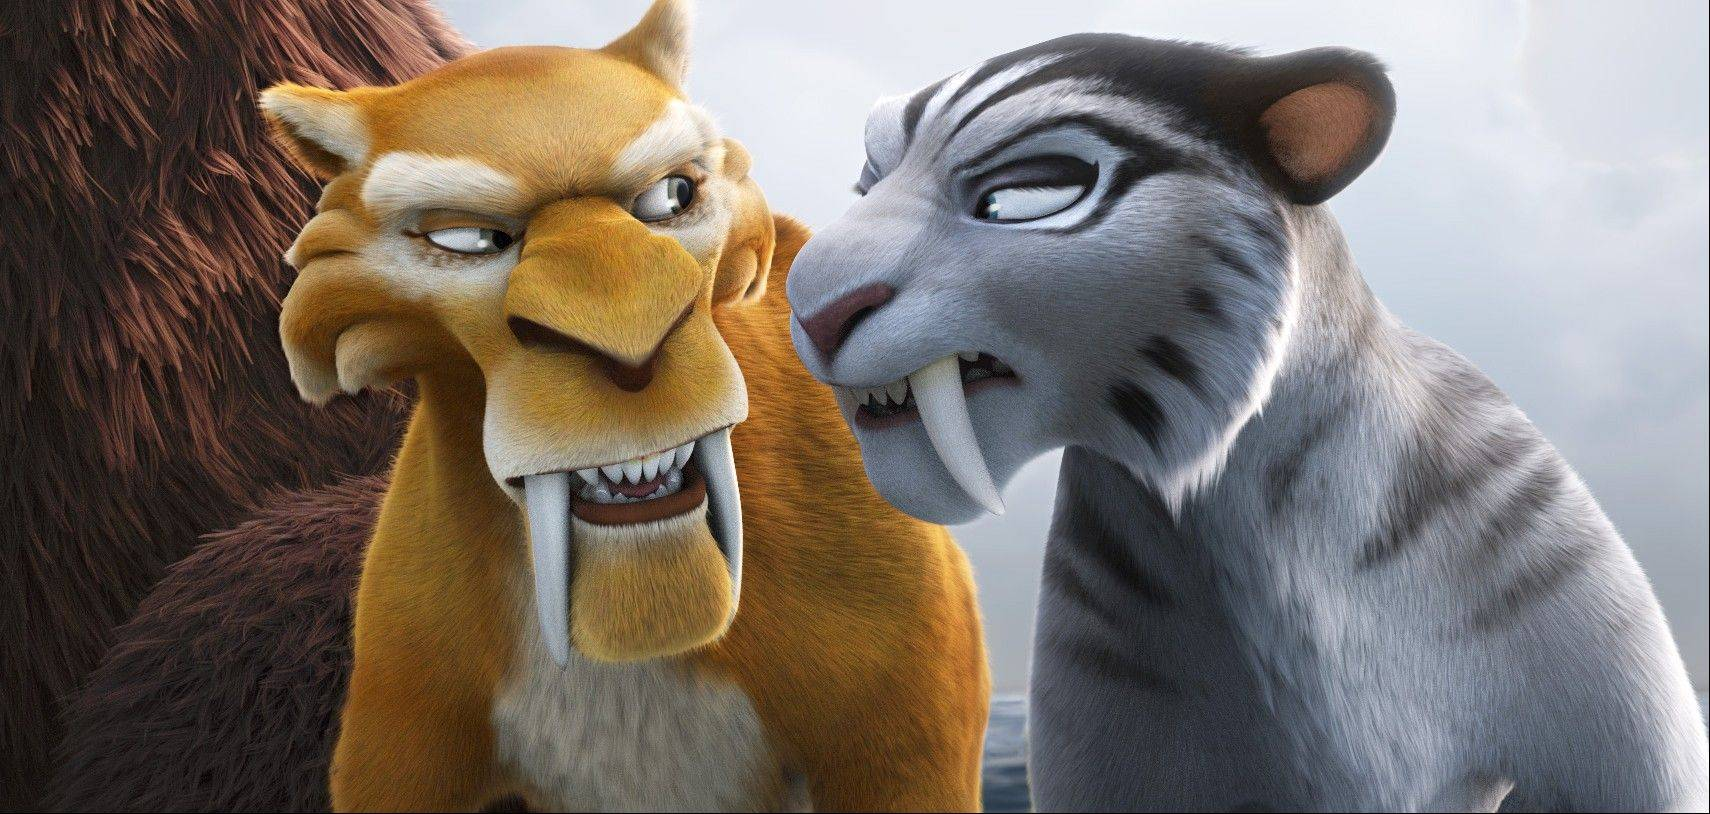 "Diego (Denis Leary) shares a love-hate pussycat relationship with Shira (Jennifer Lopez) in Ice Age: Continental Drift,"" which led the box office this weekend."